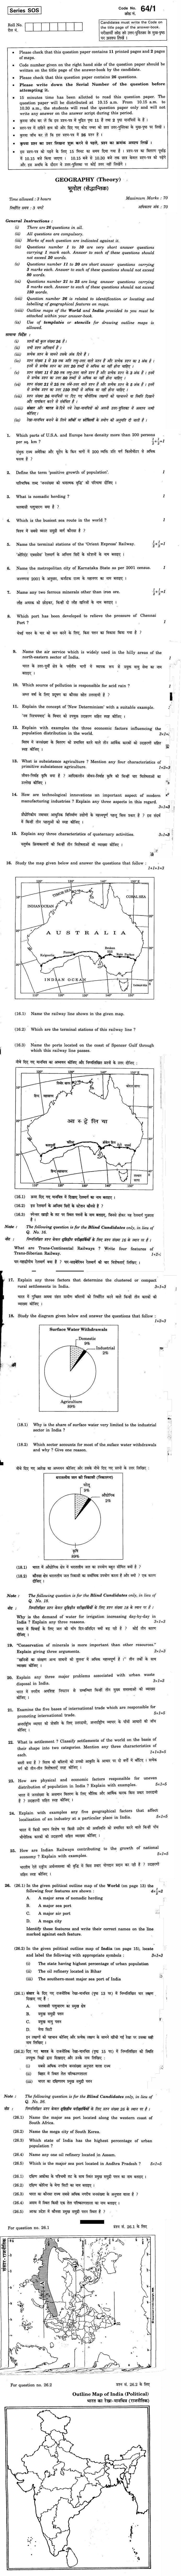 CBSE Class XII Previous Year Question Papers 2011 Geography